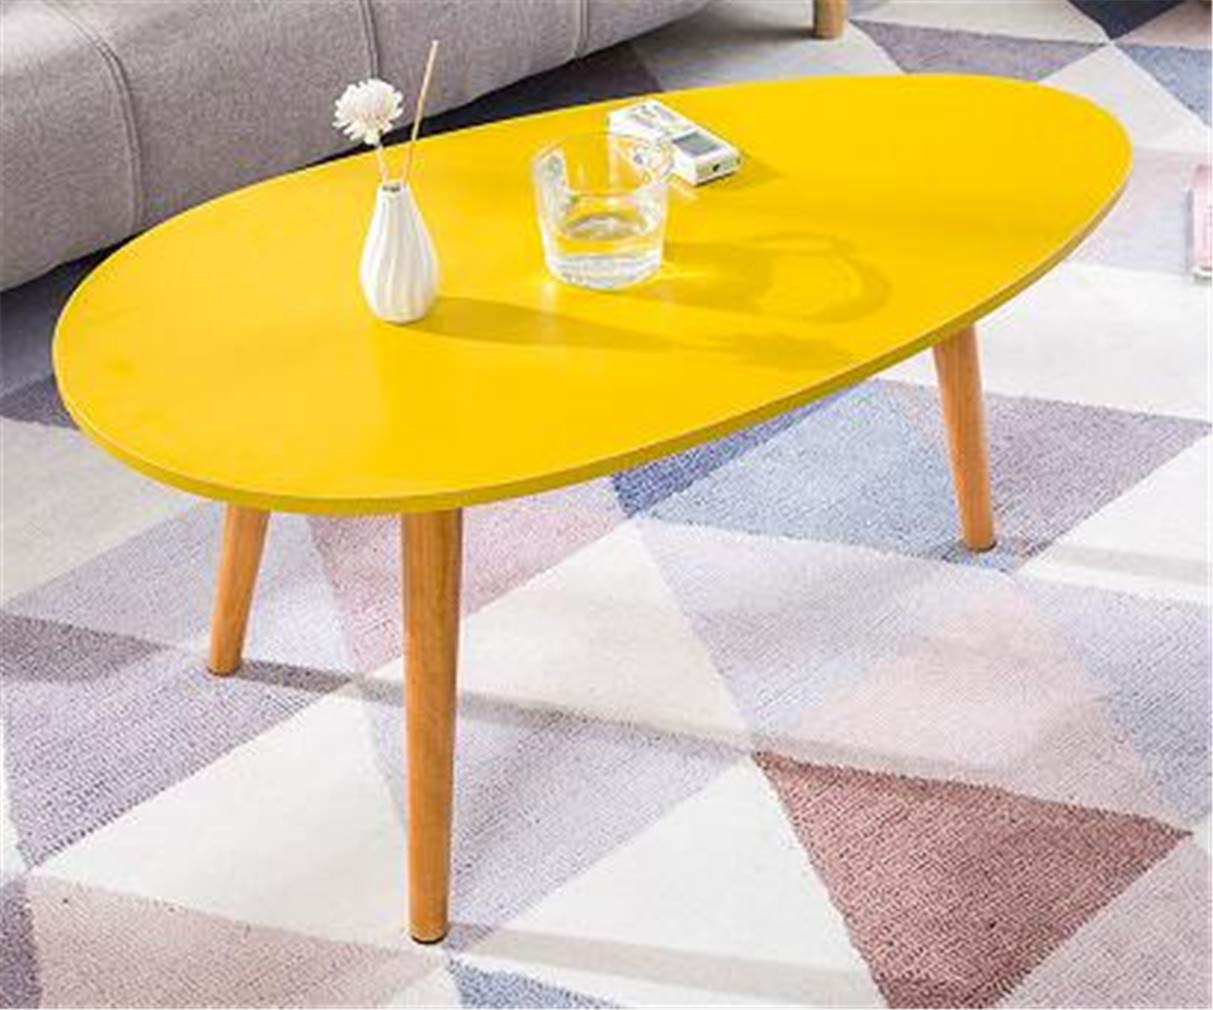 Small Yellow Coffee Tables Living Room Tea Table 90x50x42cm Solid Wood Legs Yellow Multi-Functional Eating Table